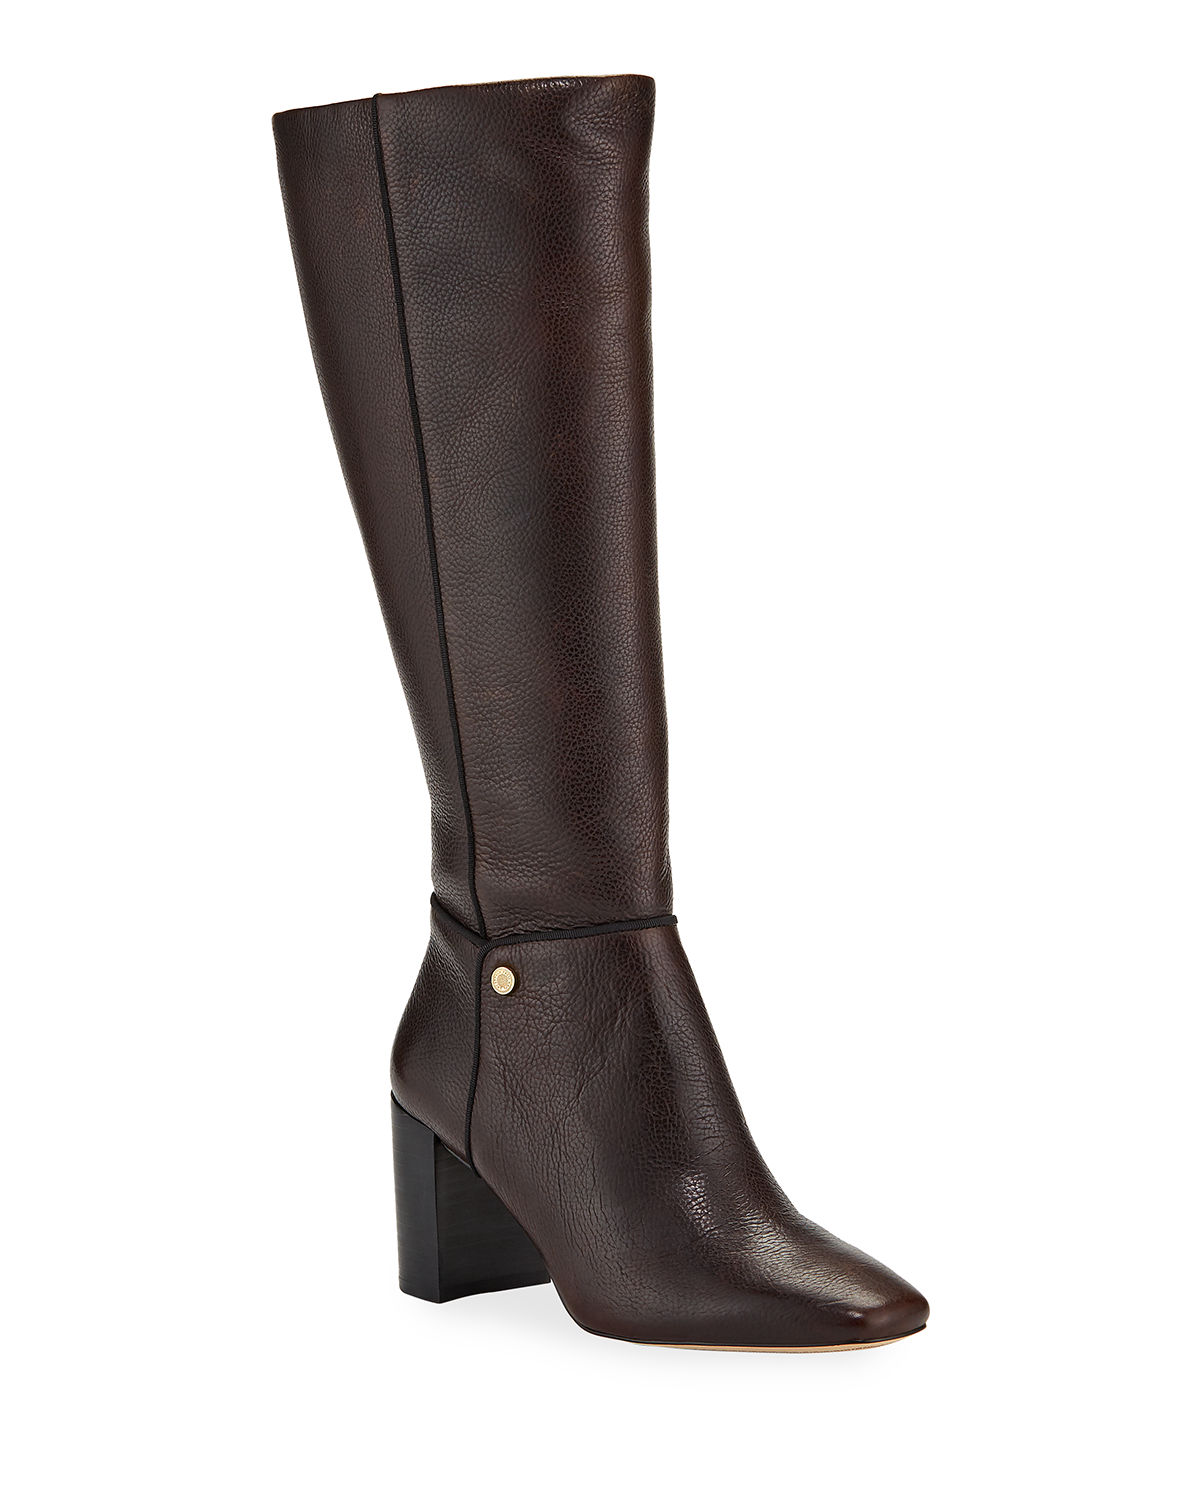 Karl Lagerfeld Boots RATANA PEBBLED LEATHER KNEE BOOTS